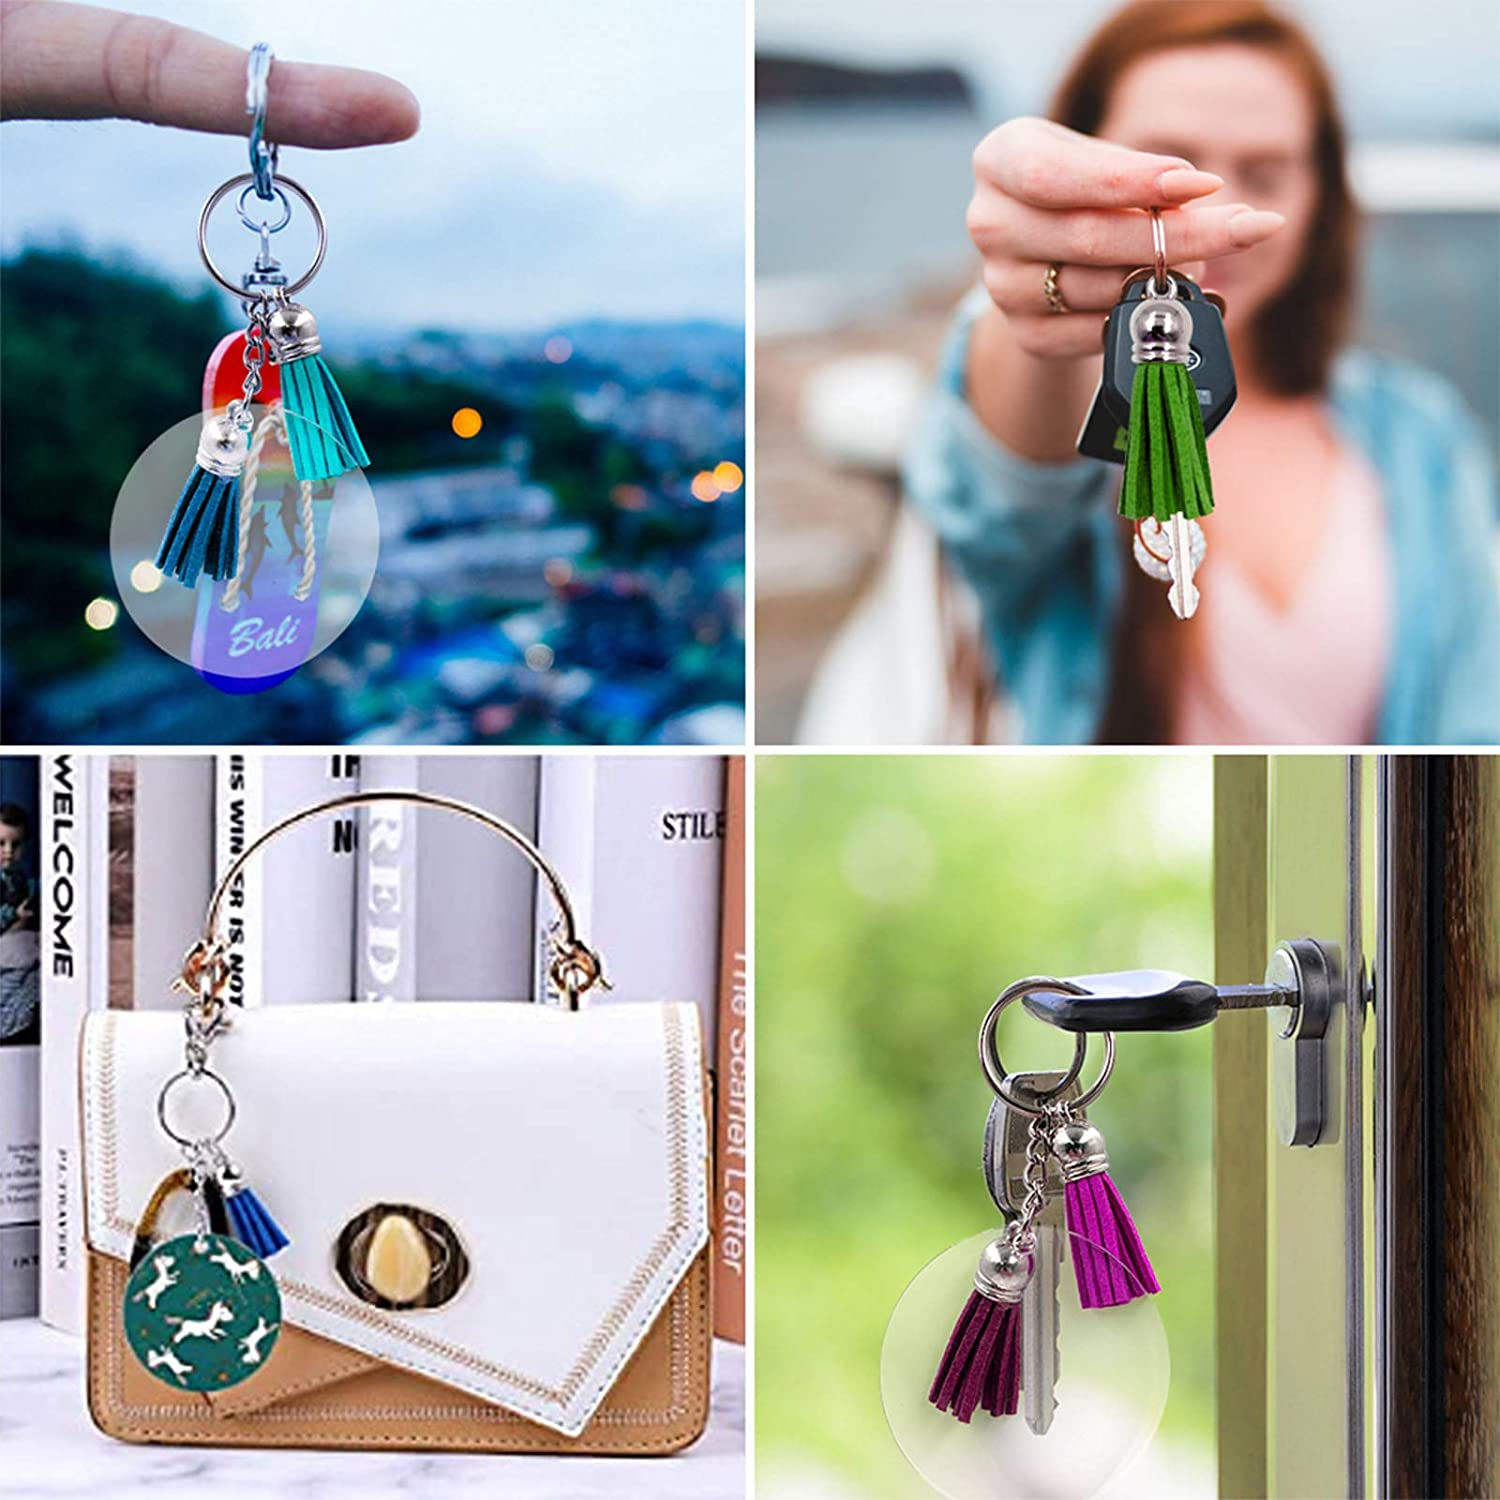 Acrylic Keychain Blanks 2 inch 24 Pieces Key Chains and 24 Pieces Colorful Tassel DIY Projects and Crafts Keychain Tassels Set for Vinyl Owlbbabies 96pcs Bulk Keychain Rings Set Acrylic Transparent Circle Discs